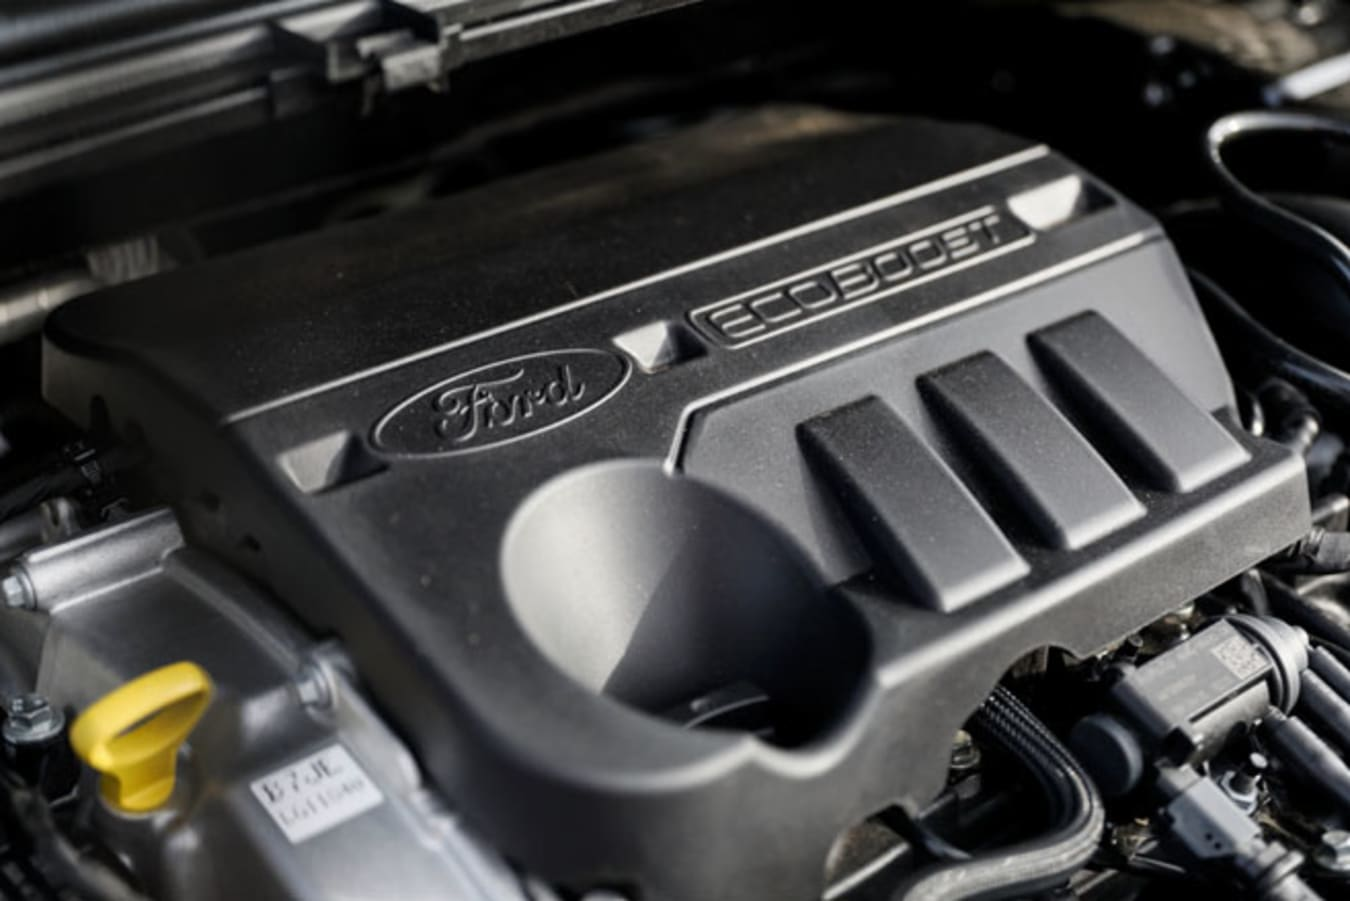 Ford Puma engine at Car of the Year 2021